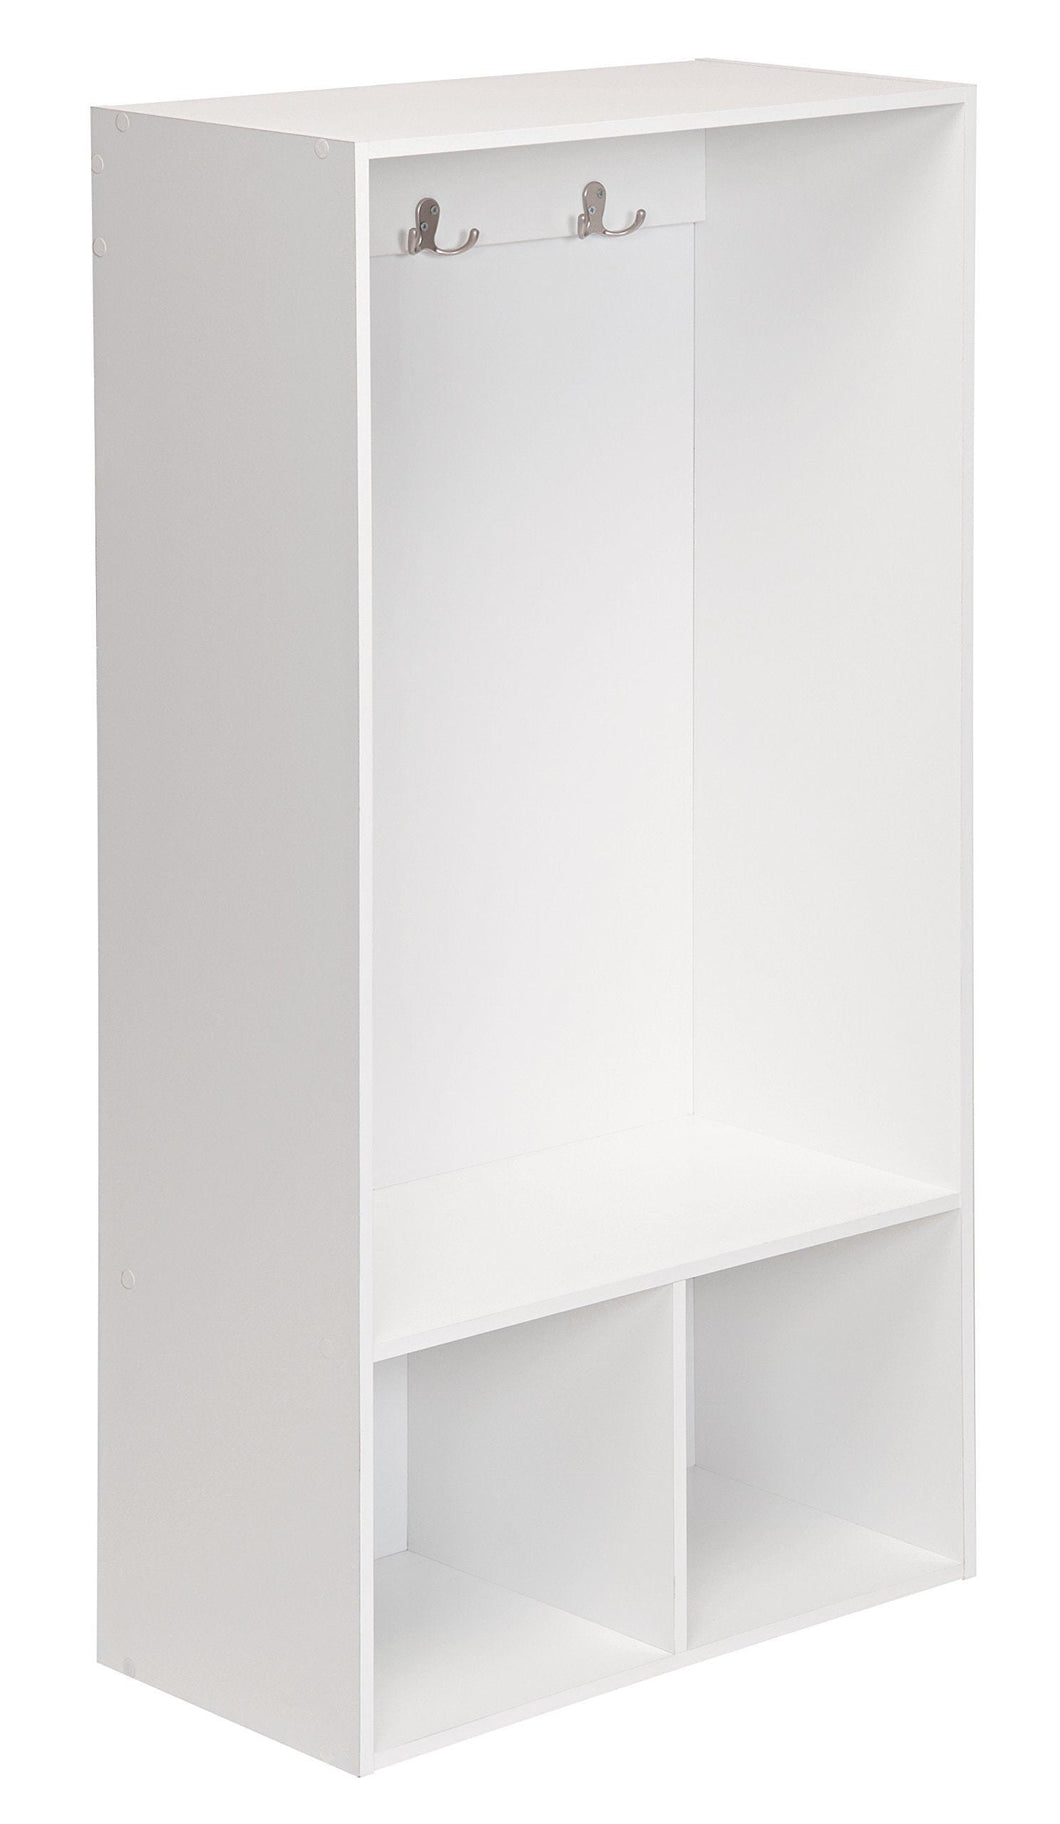 Products closetmaid 1598 kidspace open storage locker 47 inch height white